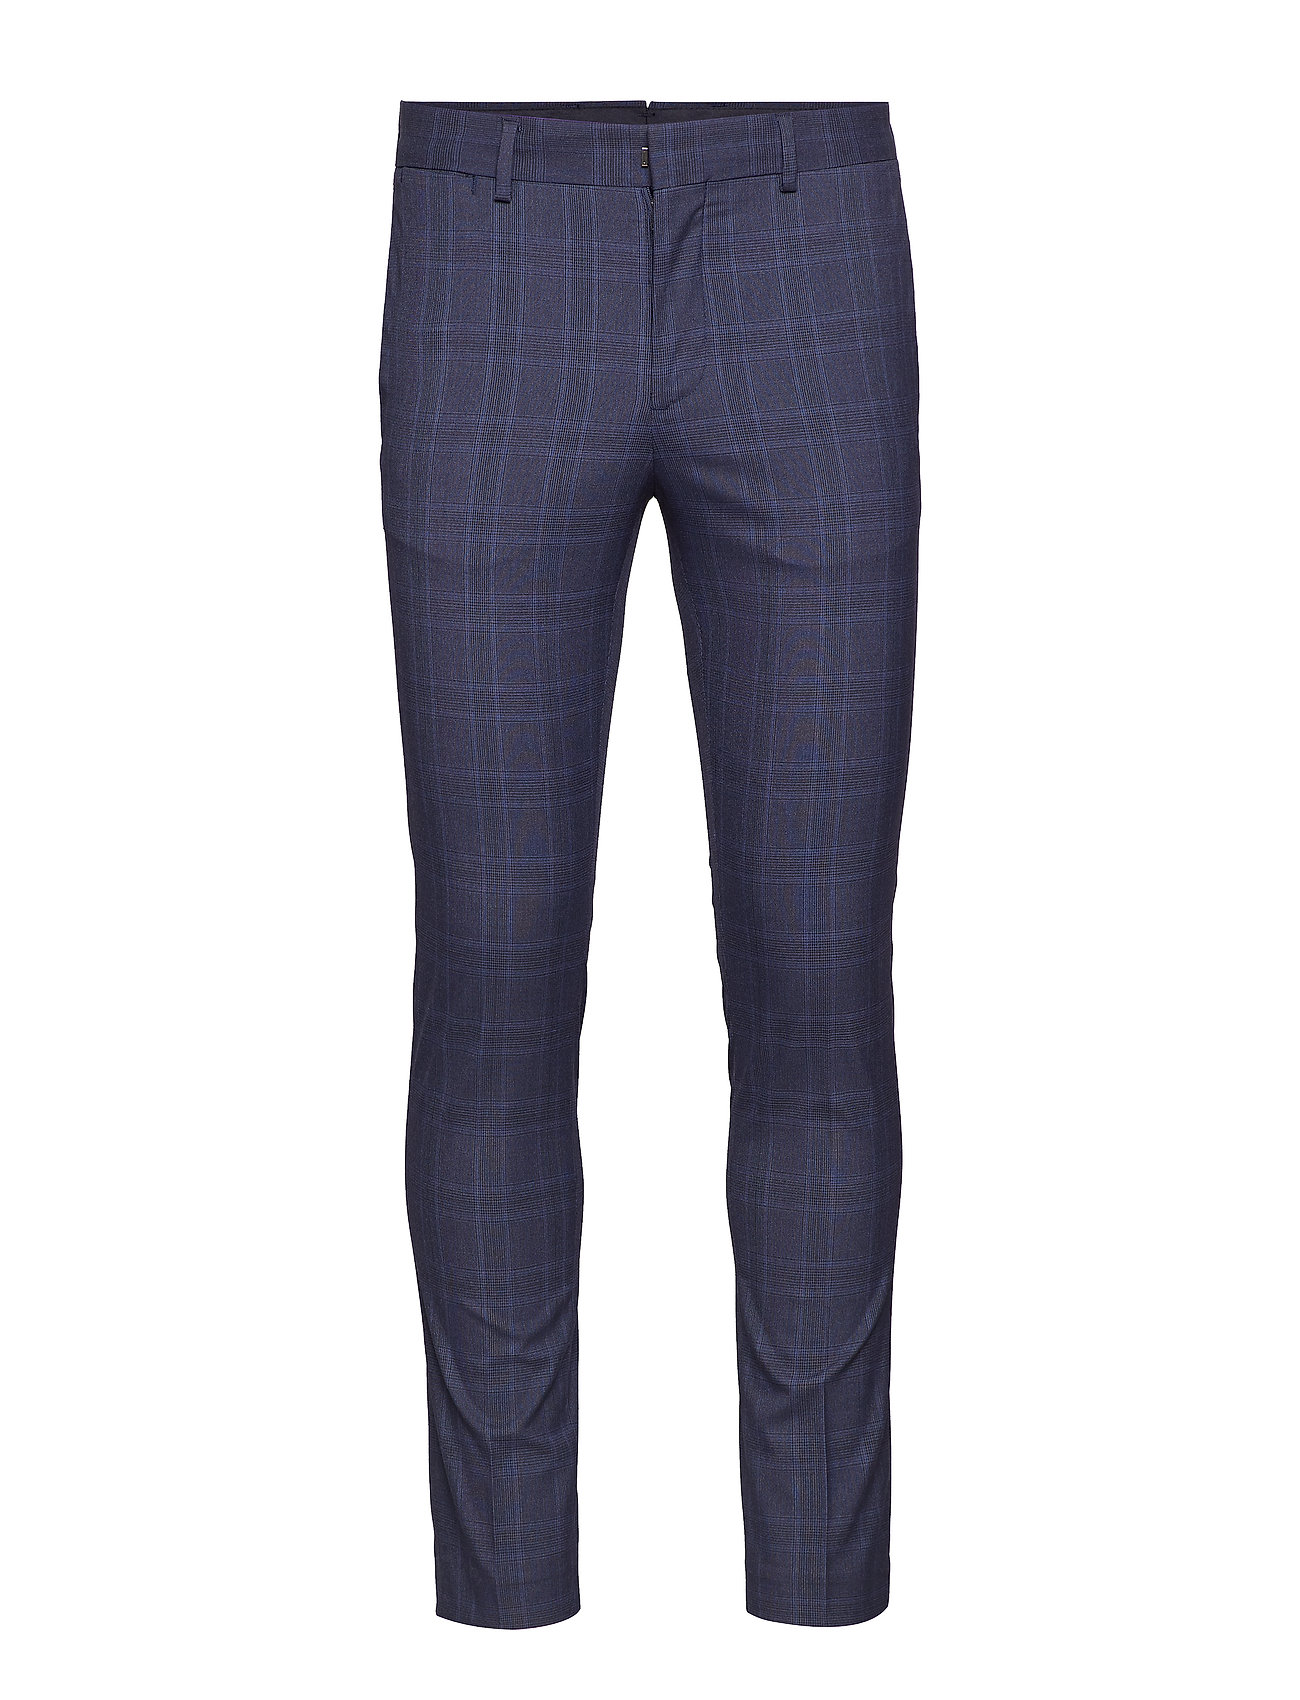 Super Slim Fit Suit Pants Habitbukser Stylede Bukser Blå MANGO MAN